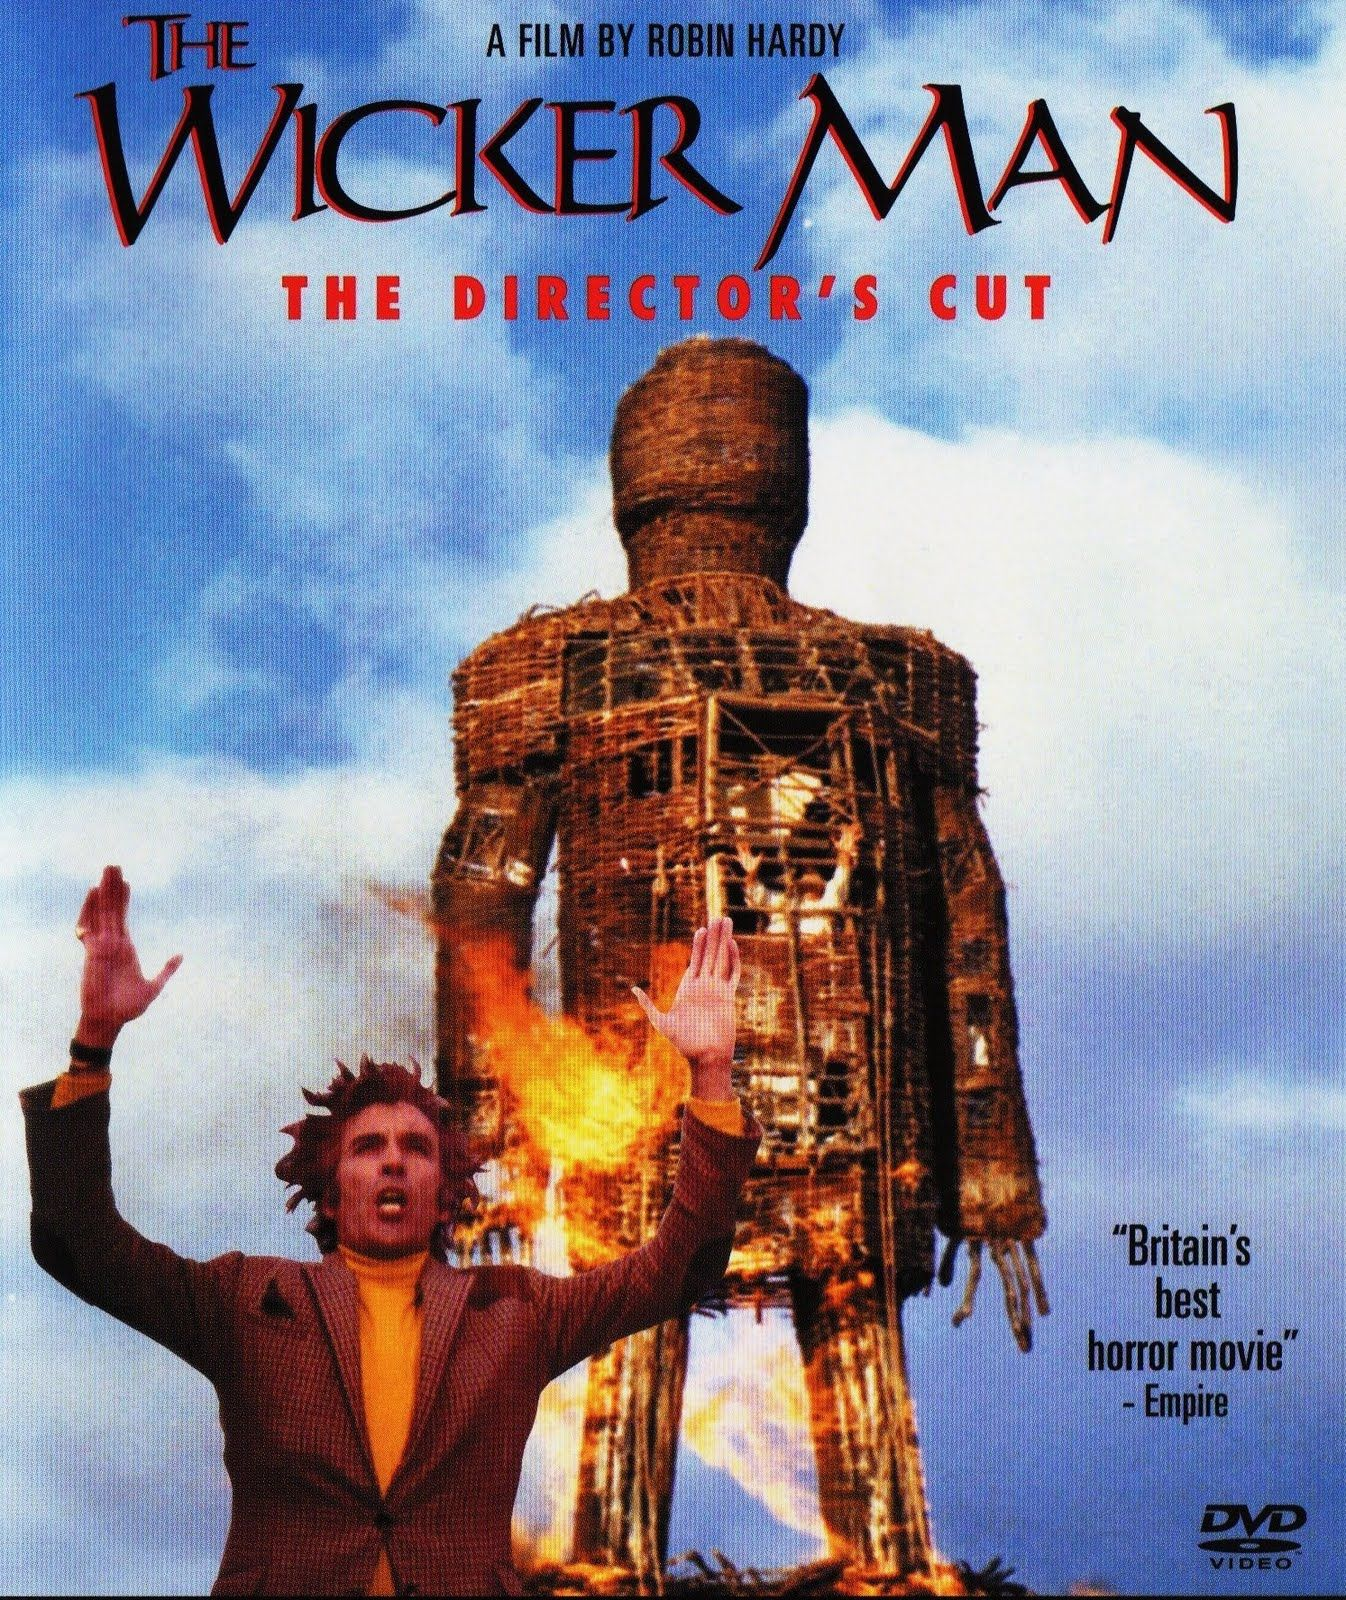 Wicker Man 1973 Edward Woodward